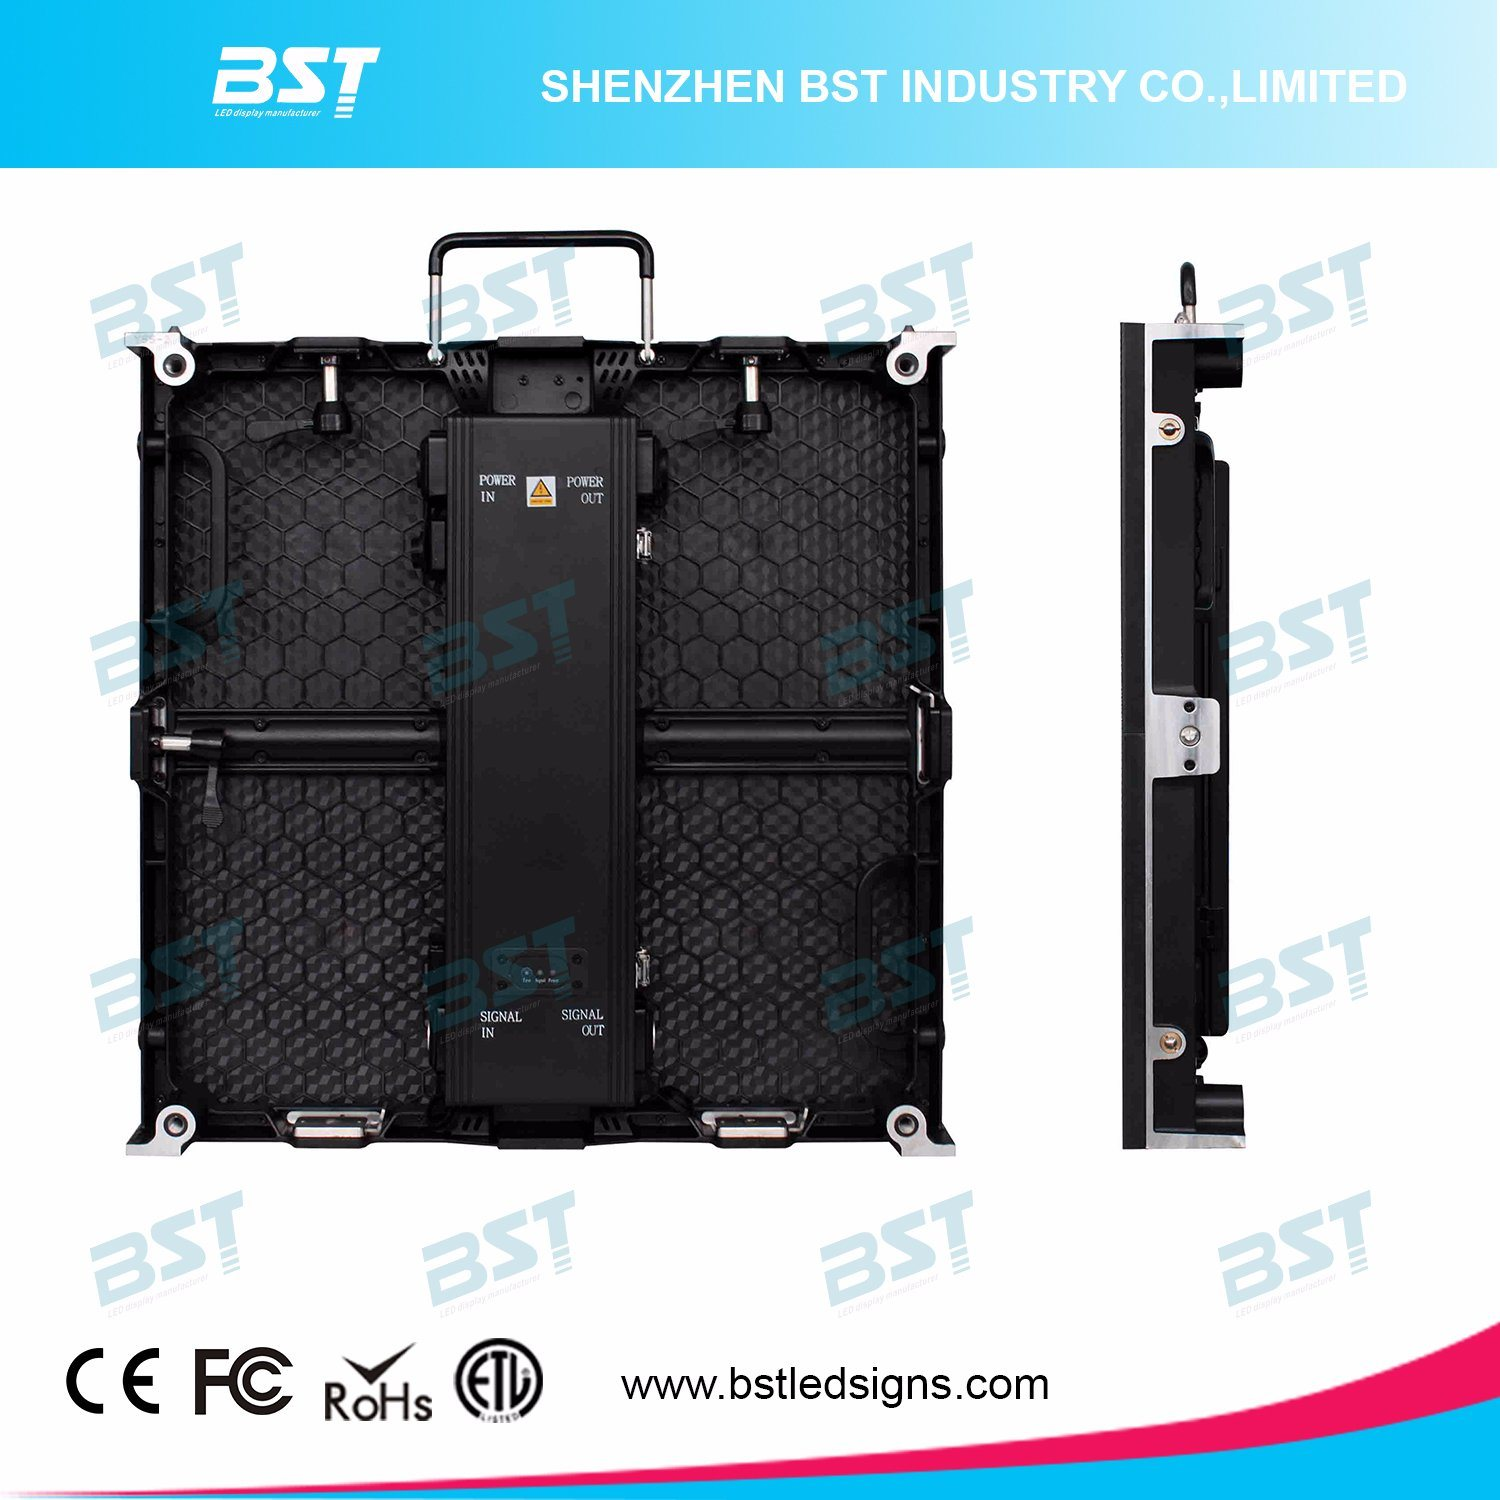 [Hot Item] 500*500mm P6 25 Outdoor Rental LED Display Screen for Stage,  Concerts, Expo Events